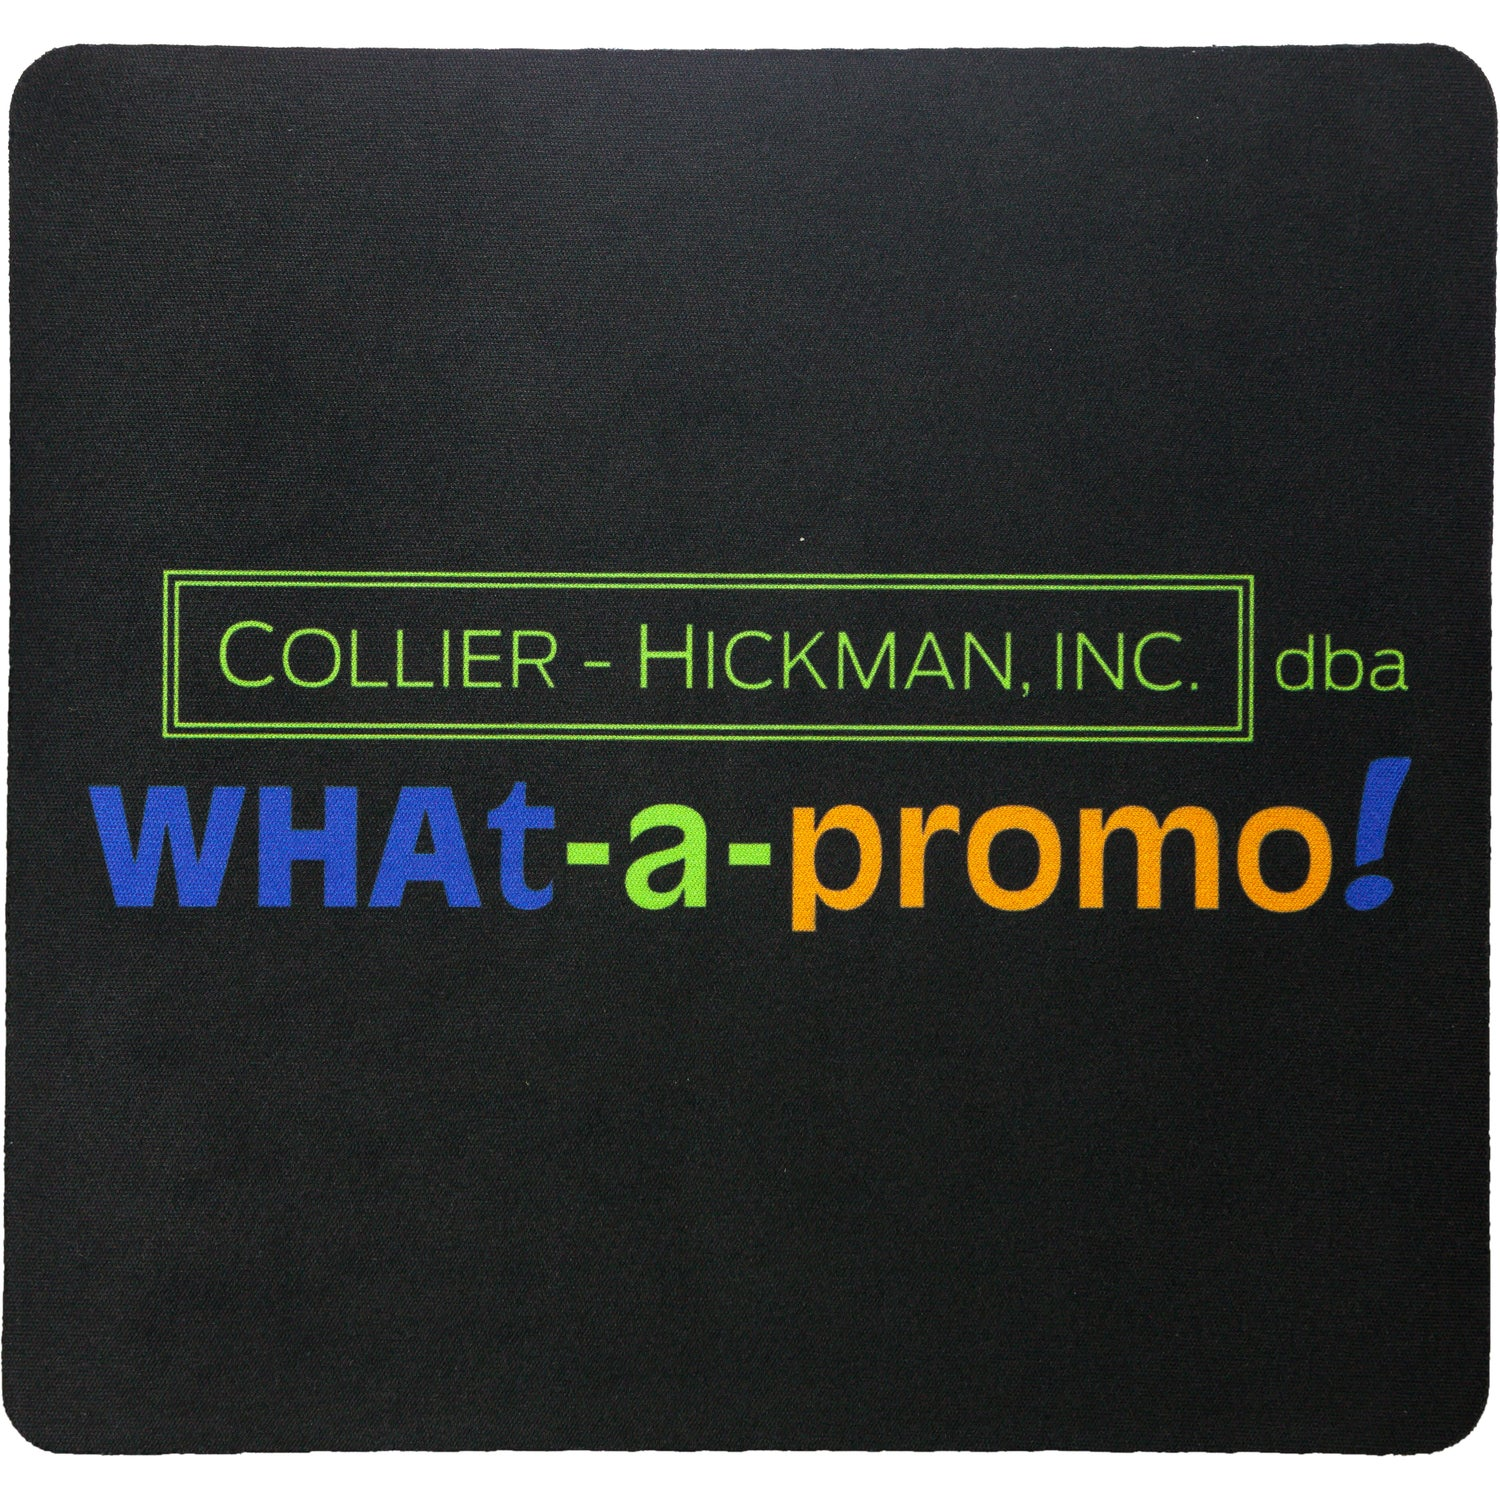 "Custom Mouse Pads (7 1/2"" x 8"" x 1/16"")"